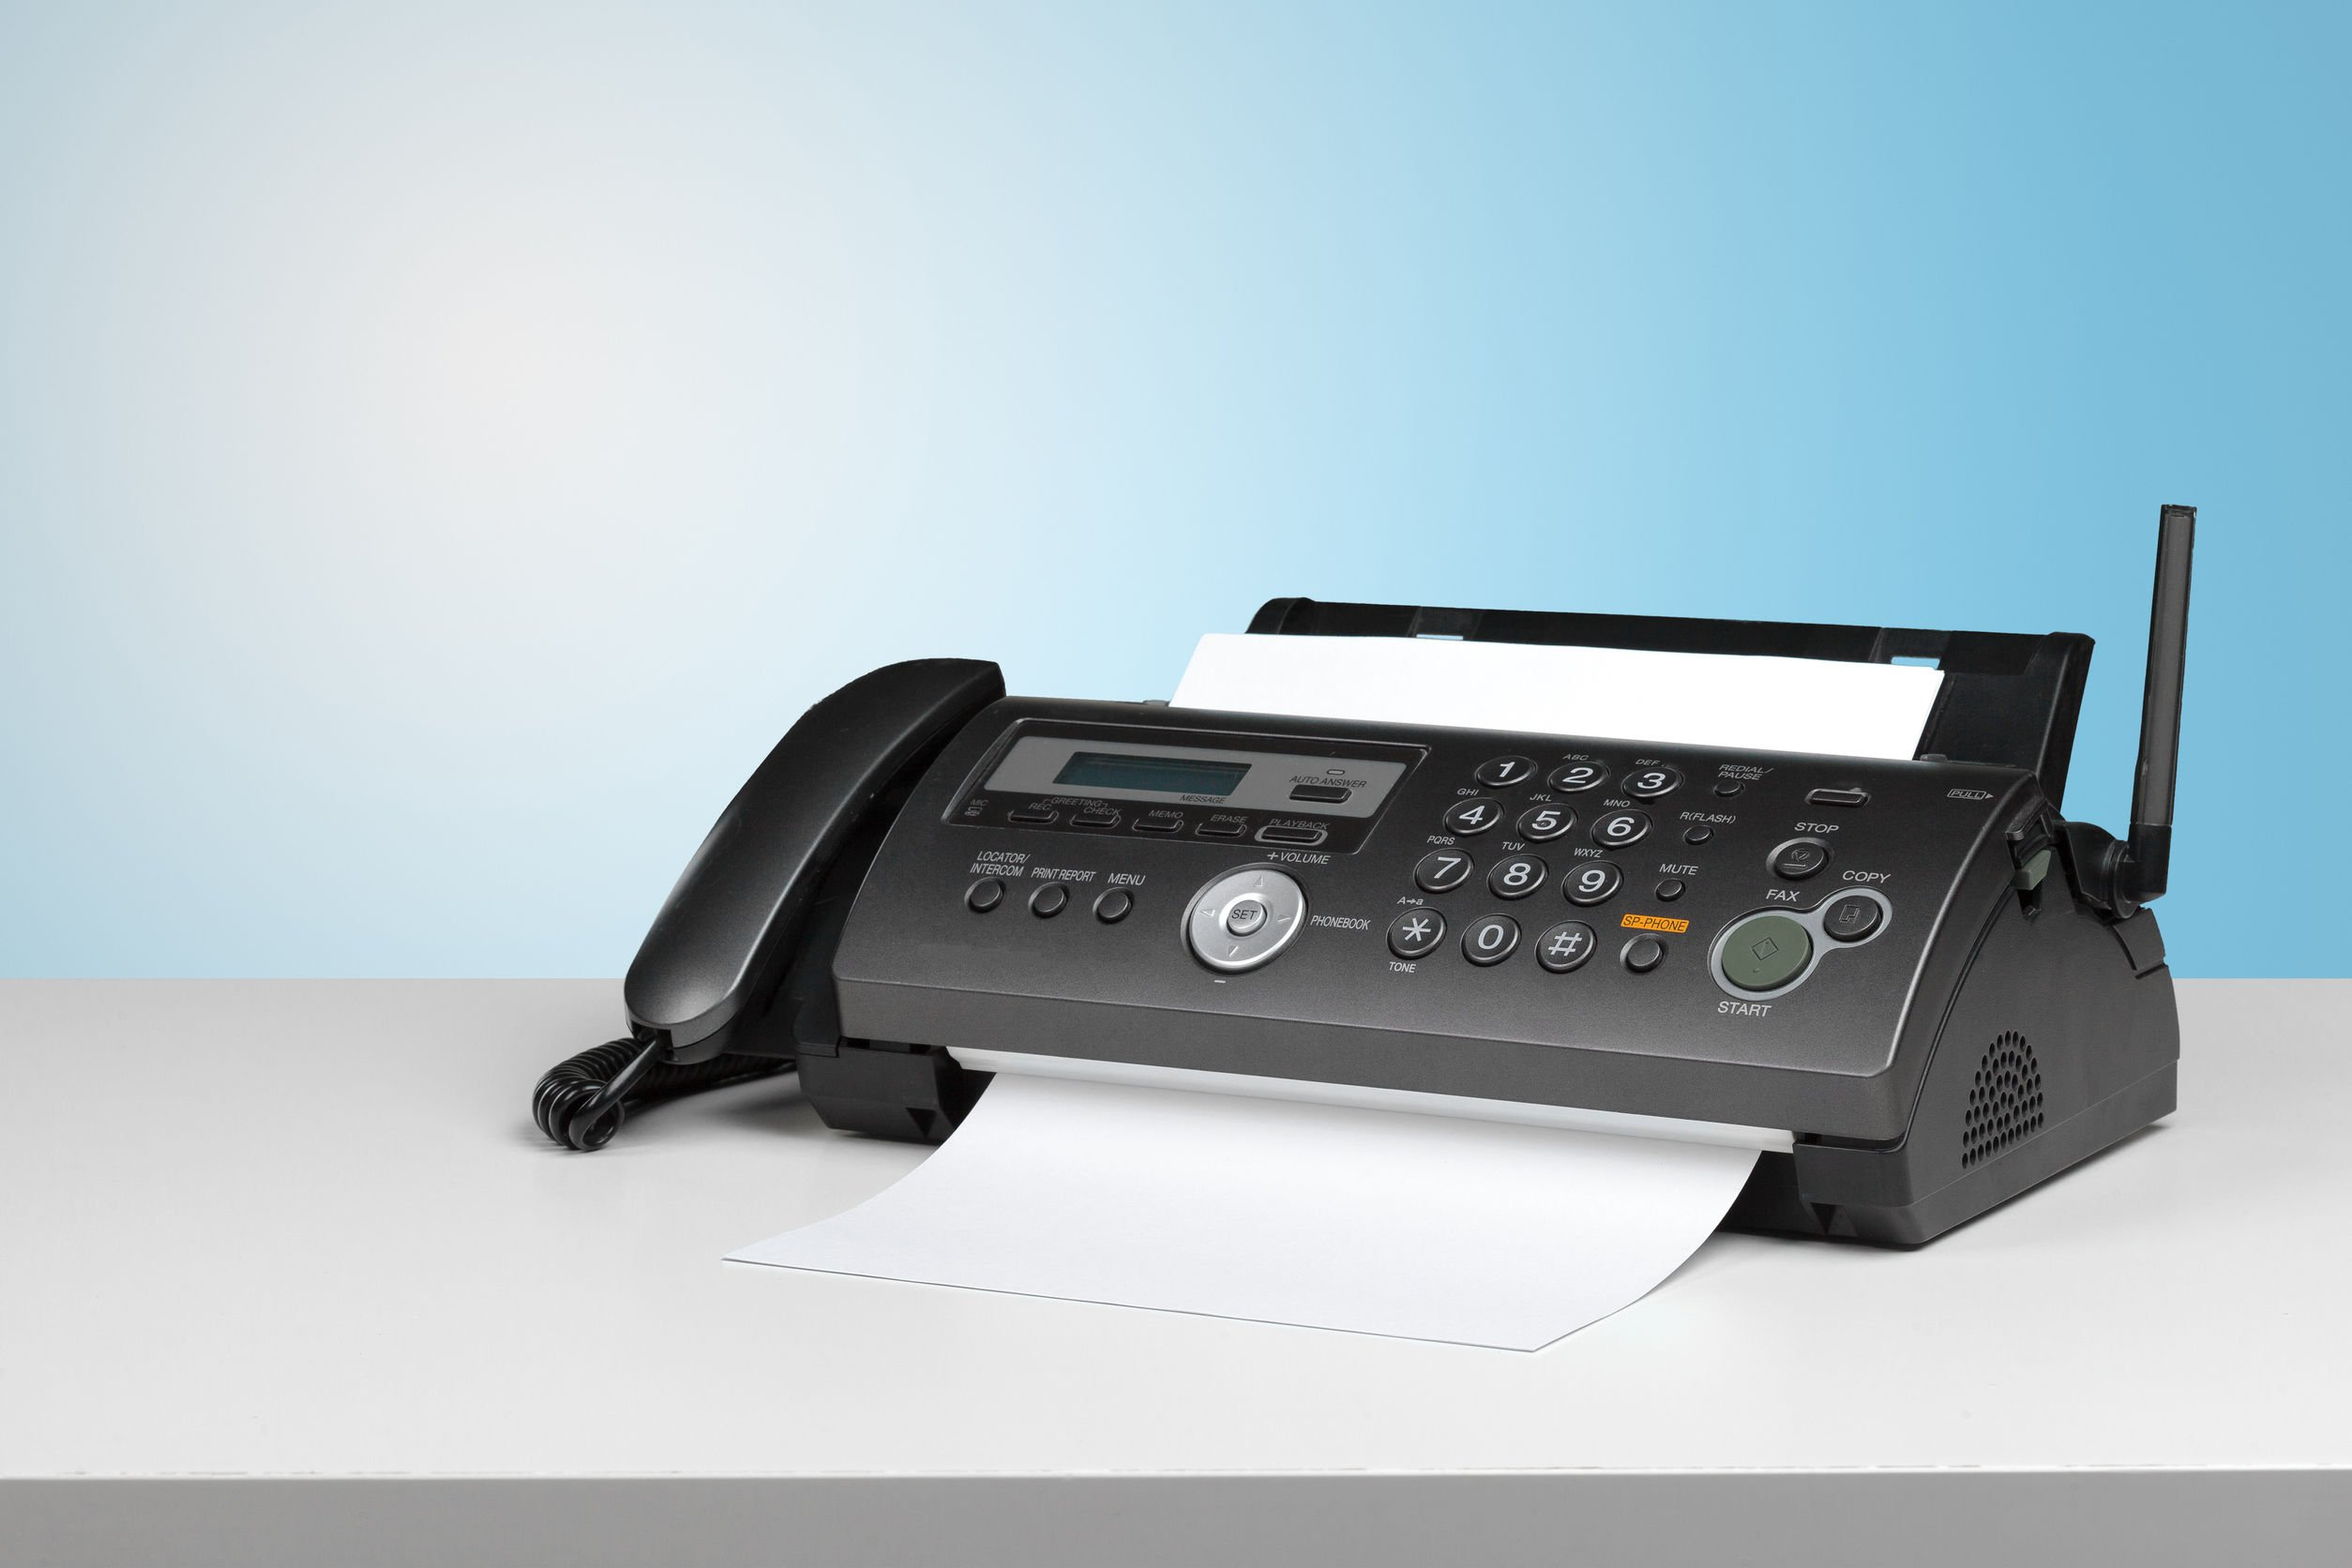 Things You NEED TO KNOW! How to Make Faxes Work Over VOIP